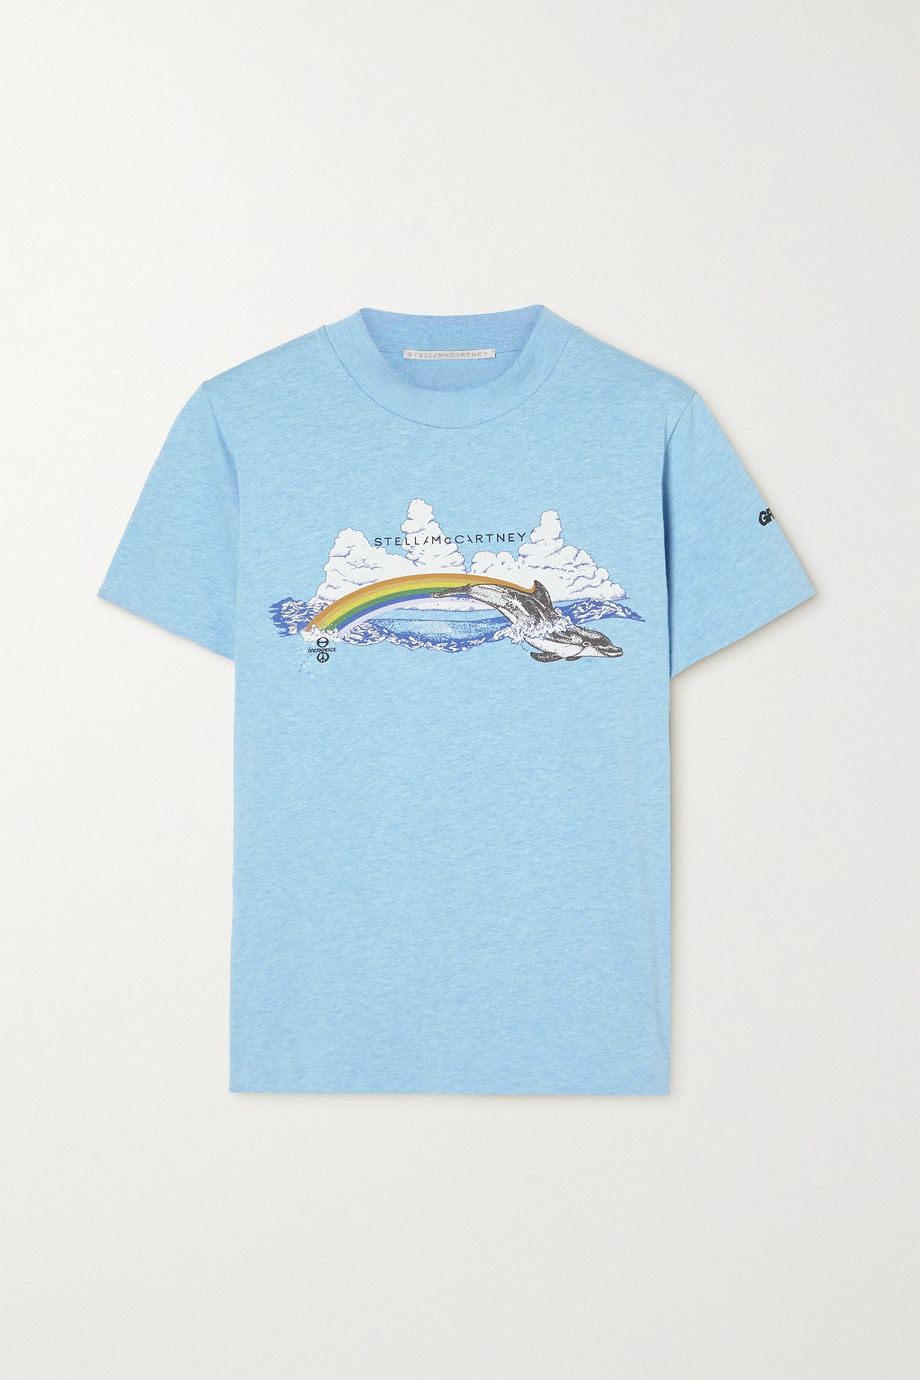 Stella McCartney + Greenpeace printed organic cotton-jersey T-shirt